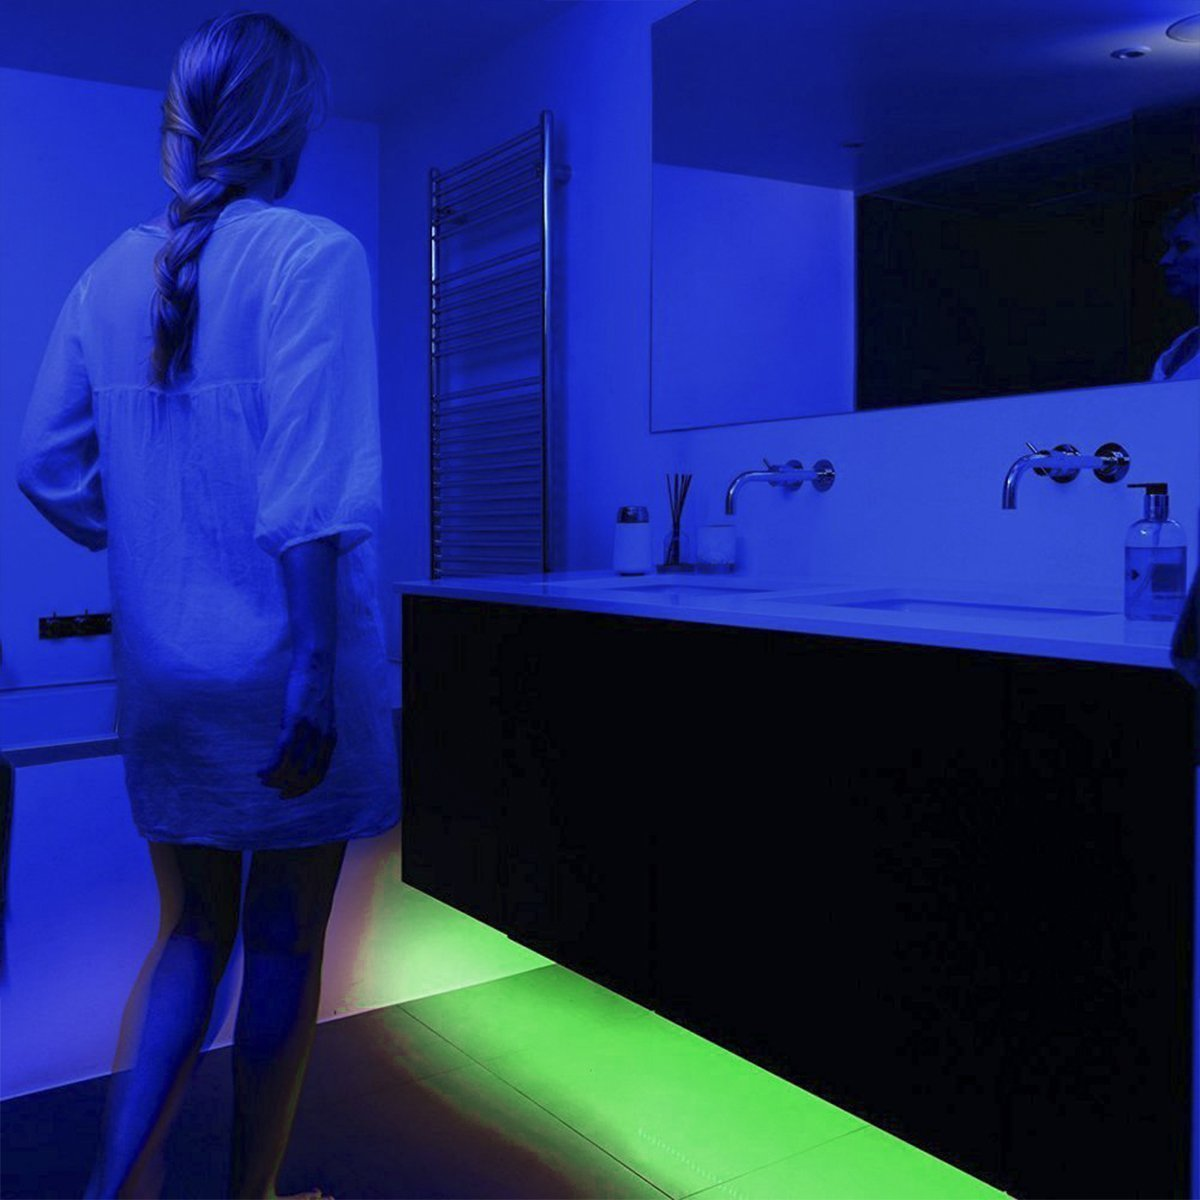 LEHOU Under Bed Light Motion Activated Illumination RGB Color Include Warm Color Automatic Staircase Lighting LED Strip Sensor Night Light Bathroom,Wardrobe,Kitchen - 1.5m/4.9ft x 2 by LEHOU (Image #7)